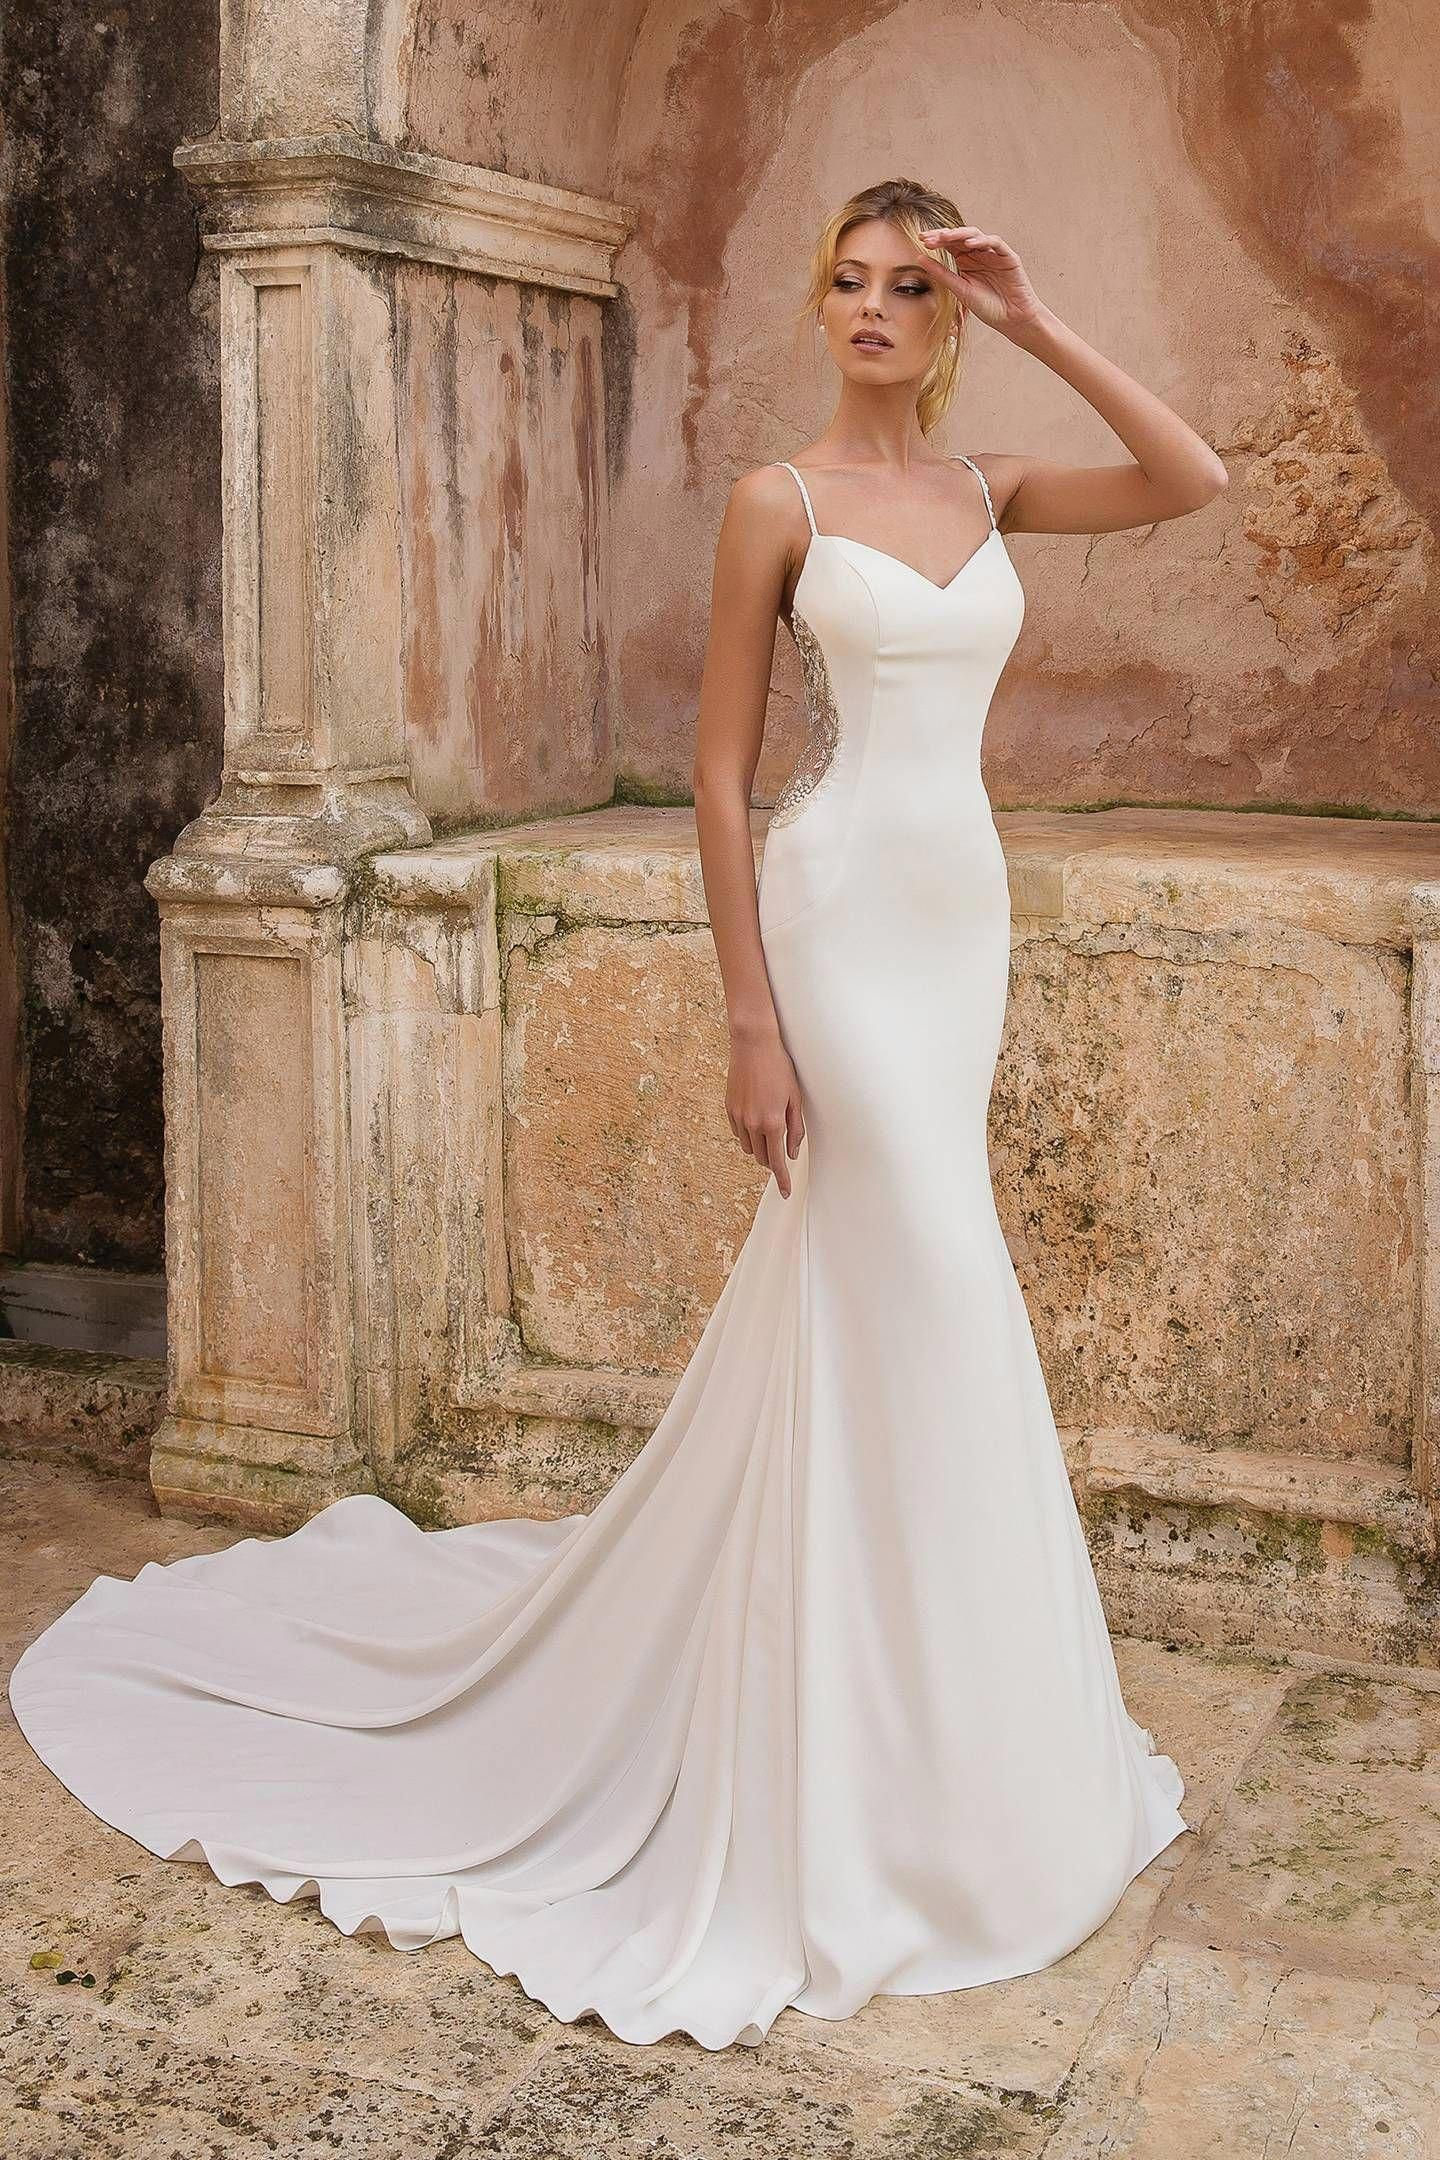 50 Classic Wedding Dresses That Are Timeless Brides Magazine Outdoorweddings Wedding Dress Trends Wedding Dresses Classic Wedding Dress